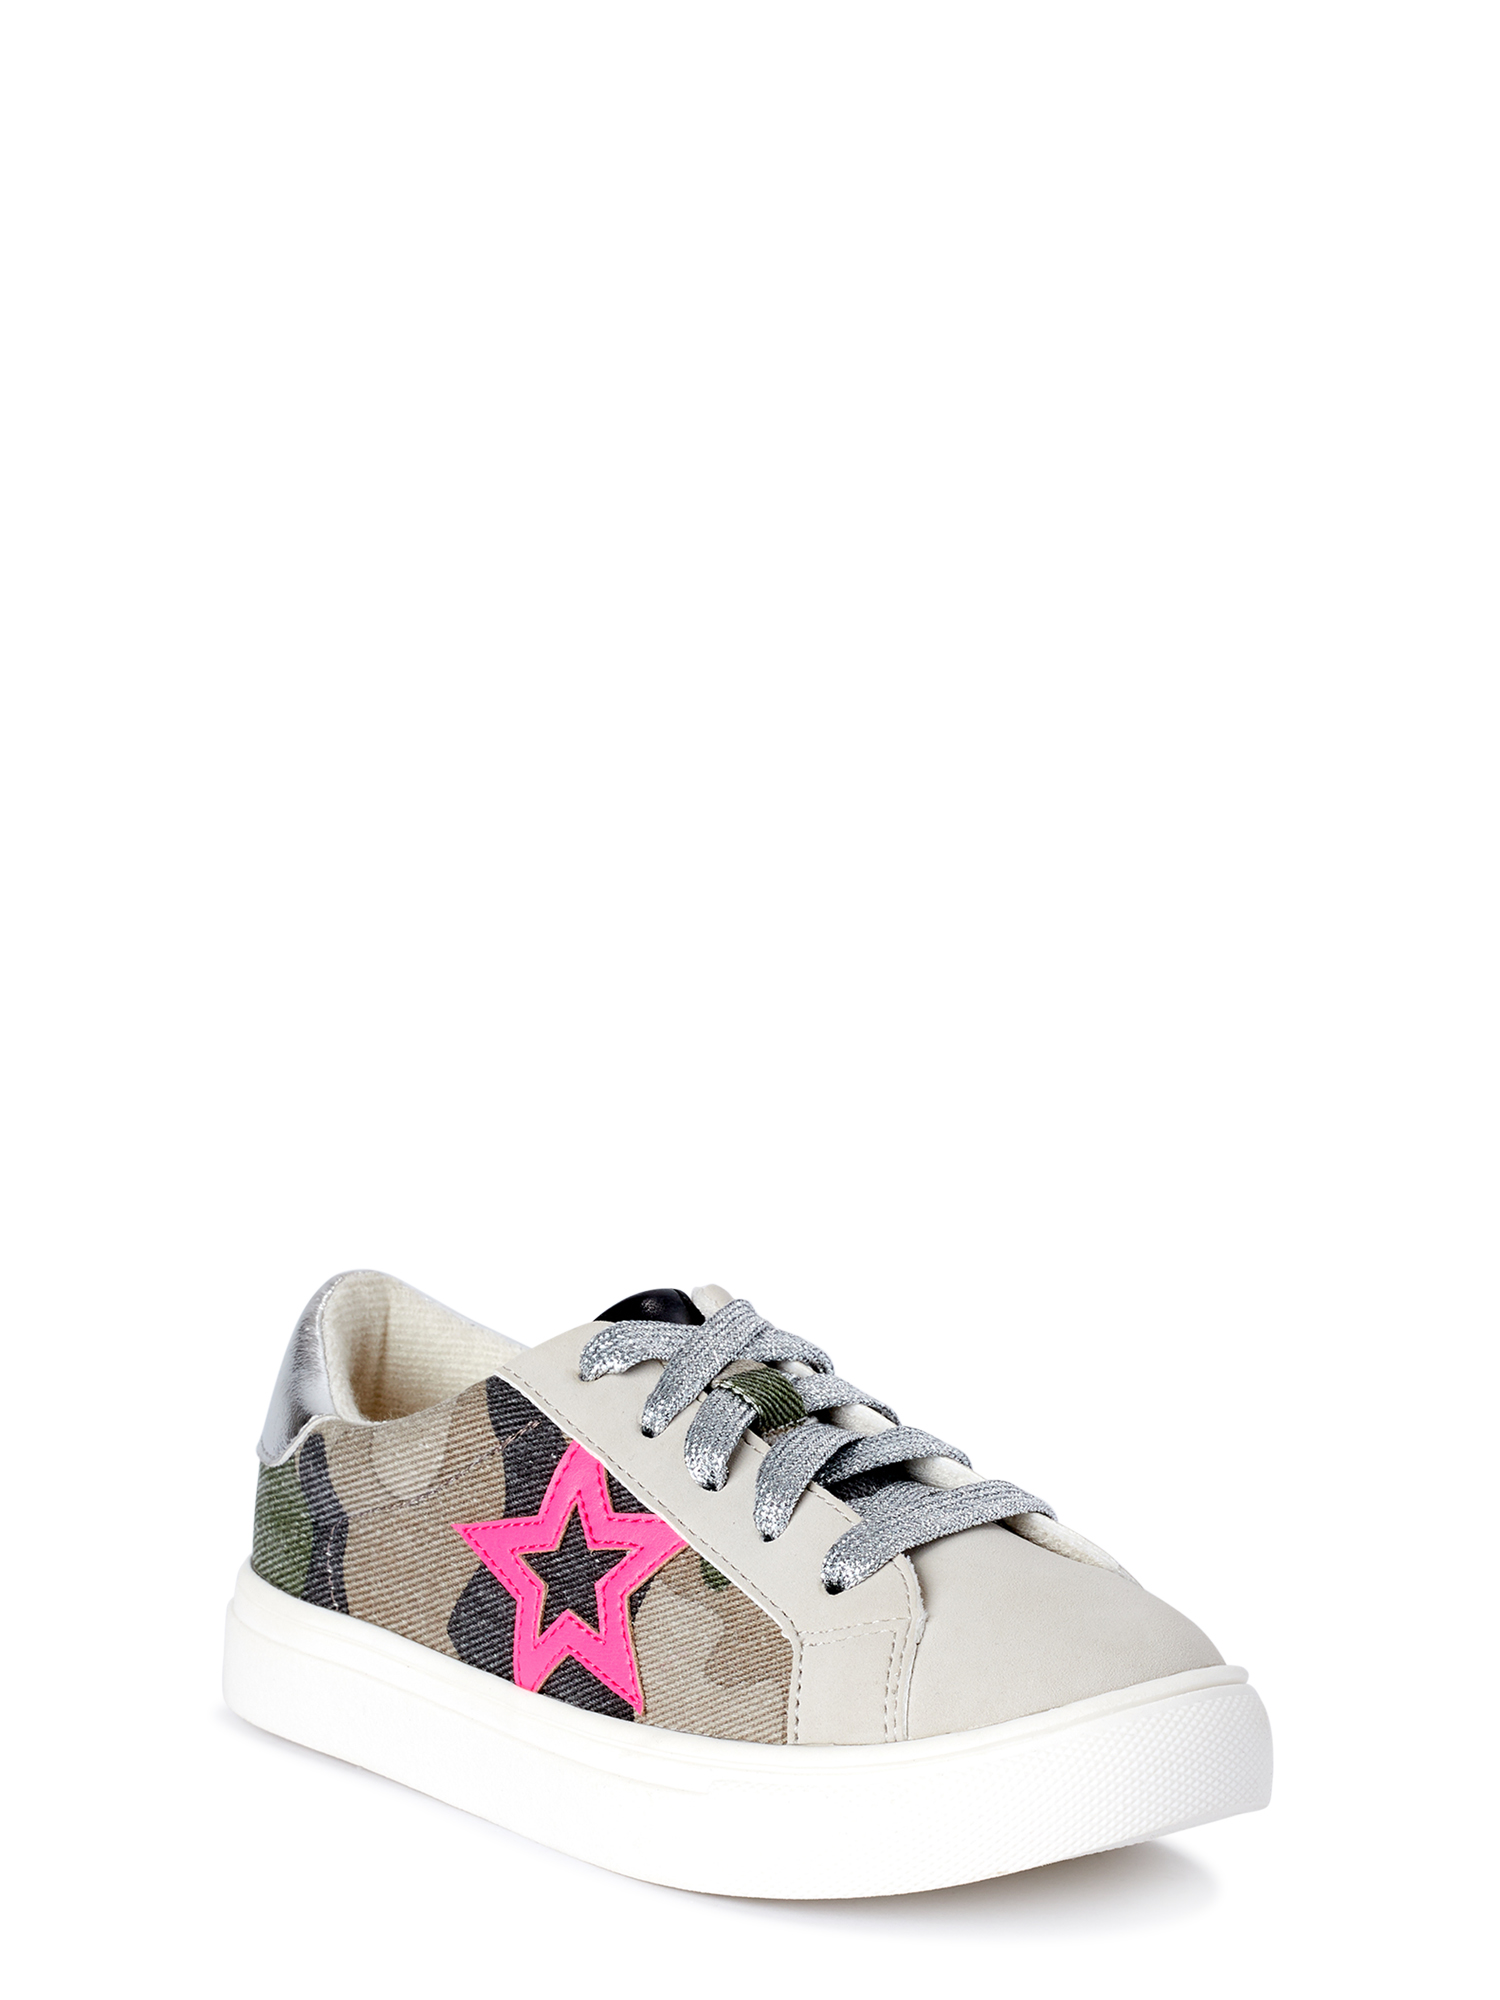 Girls//toddler Size 9 Wonder Nation Sneakers Shoes Black Mess//Pink Soles W//Strap